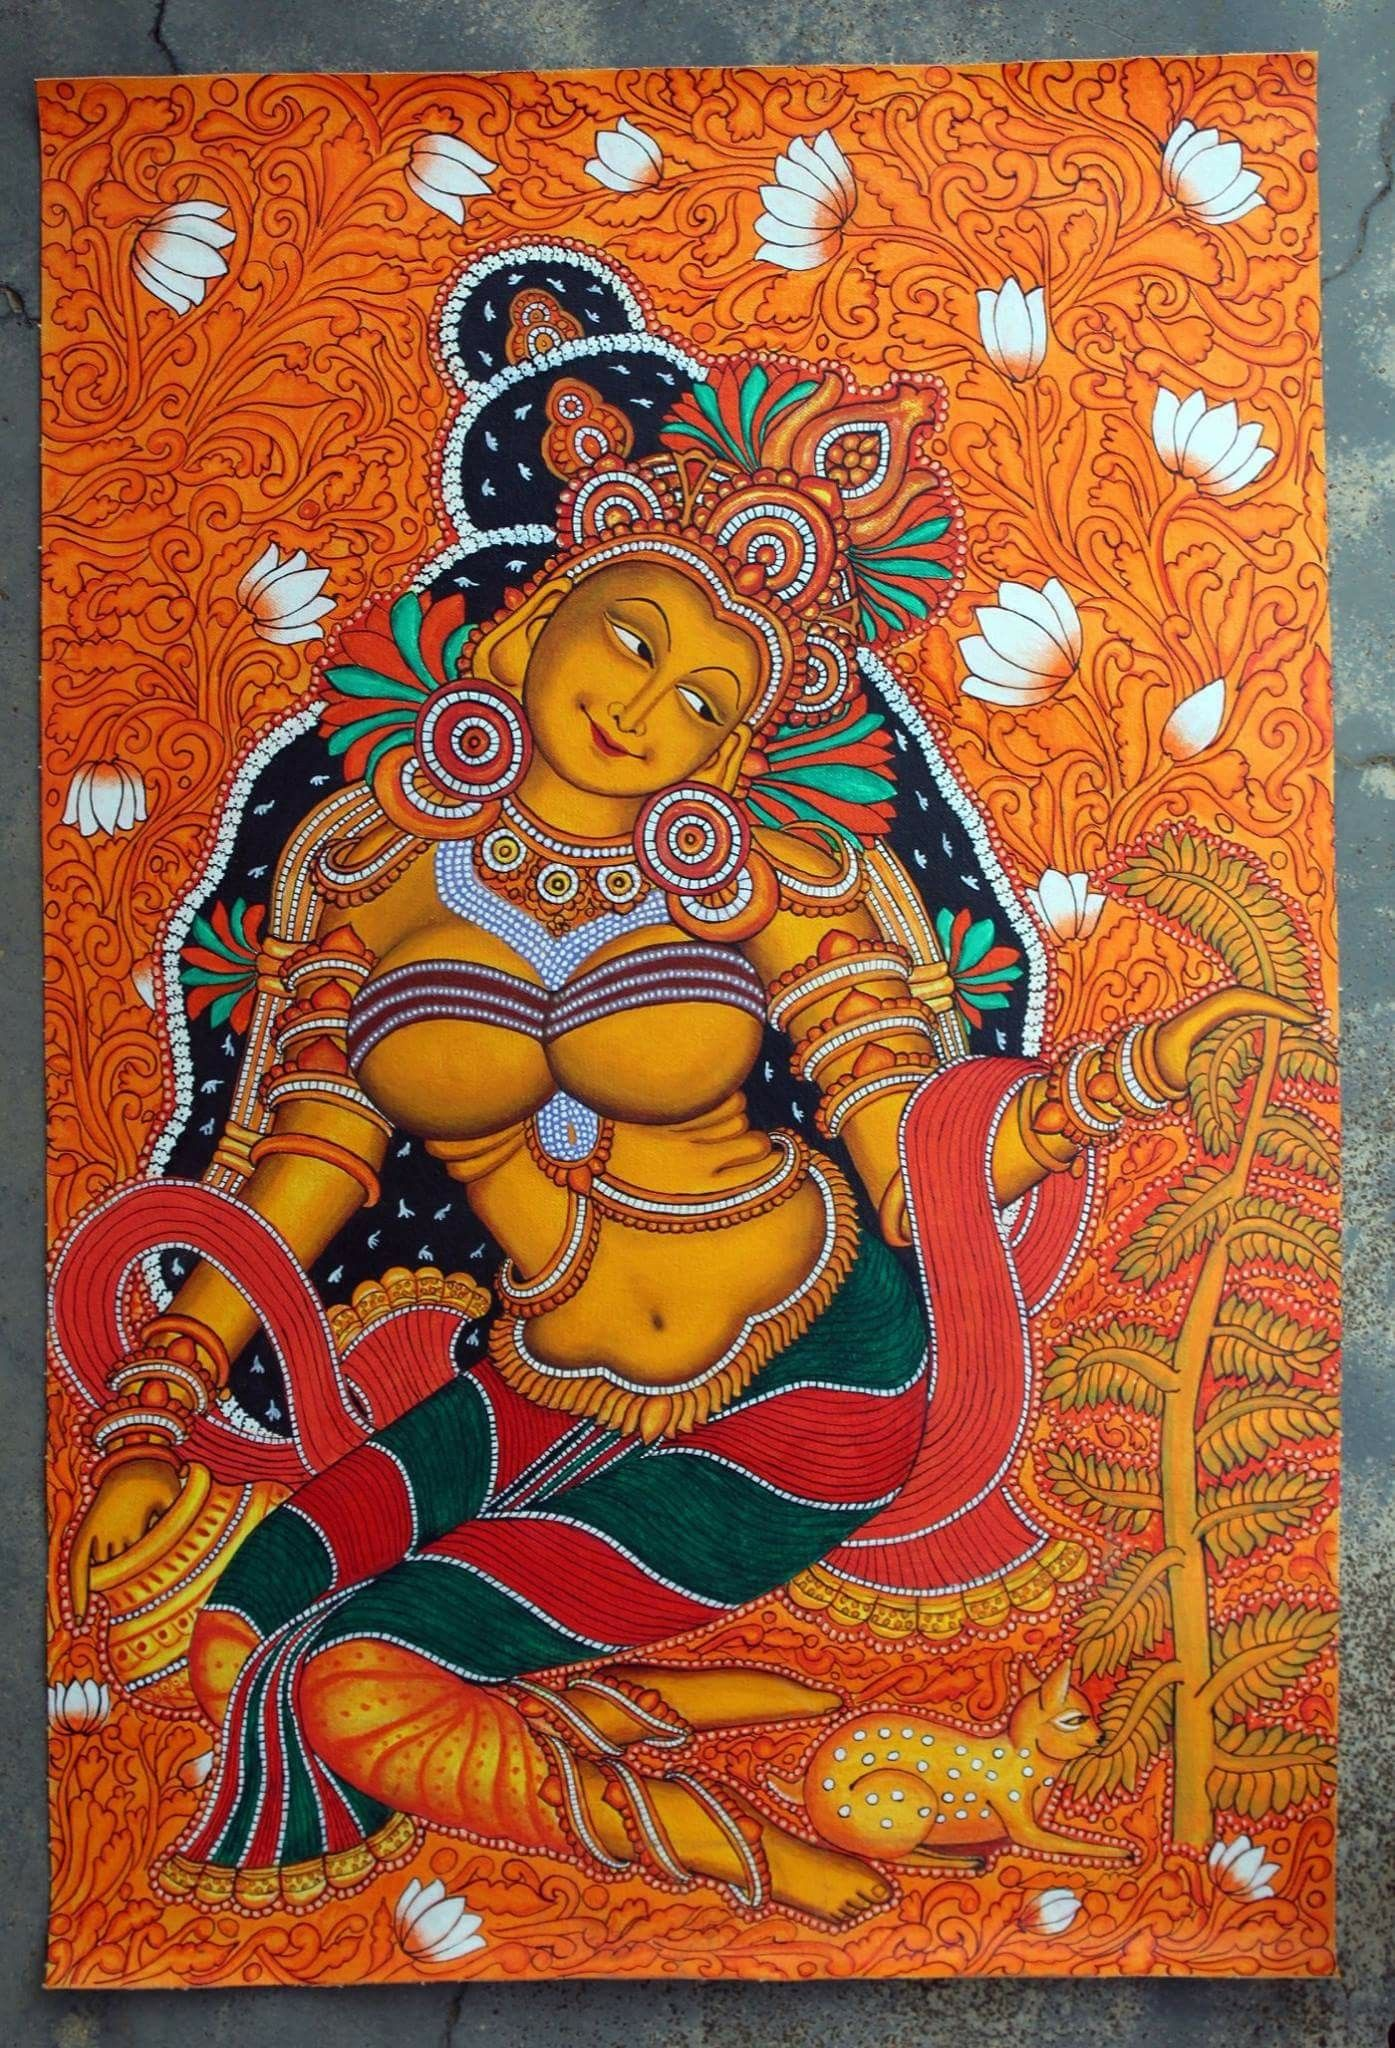 Pin by Ashwini Krishna on Mural in 2019 | Kerala mural ...